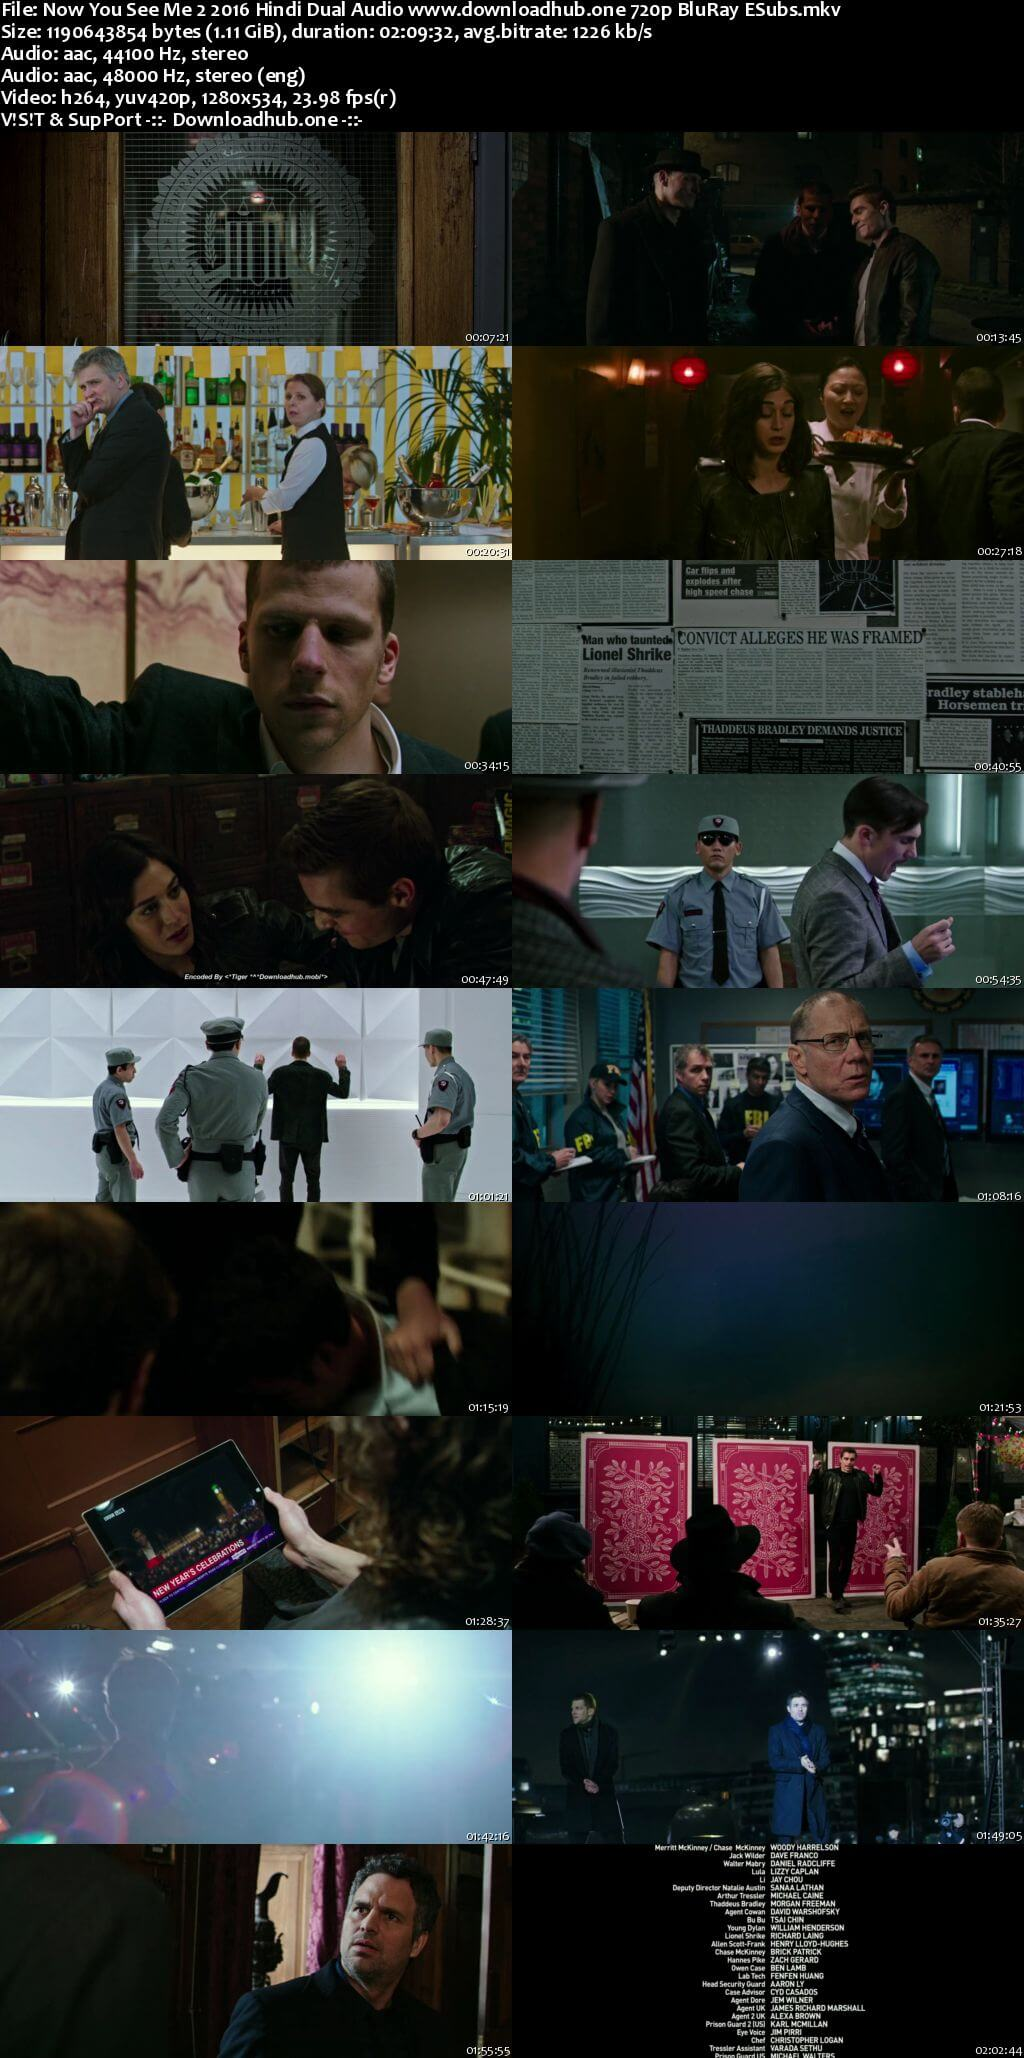 Now You See Me 2 2016 Hindi Dual Audio 720p BluRay ESubs